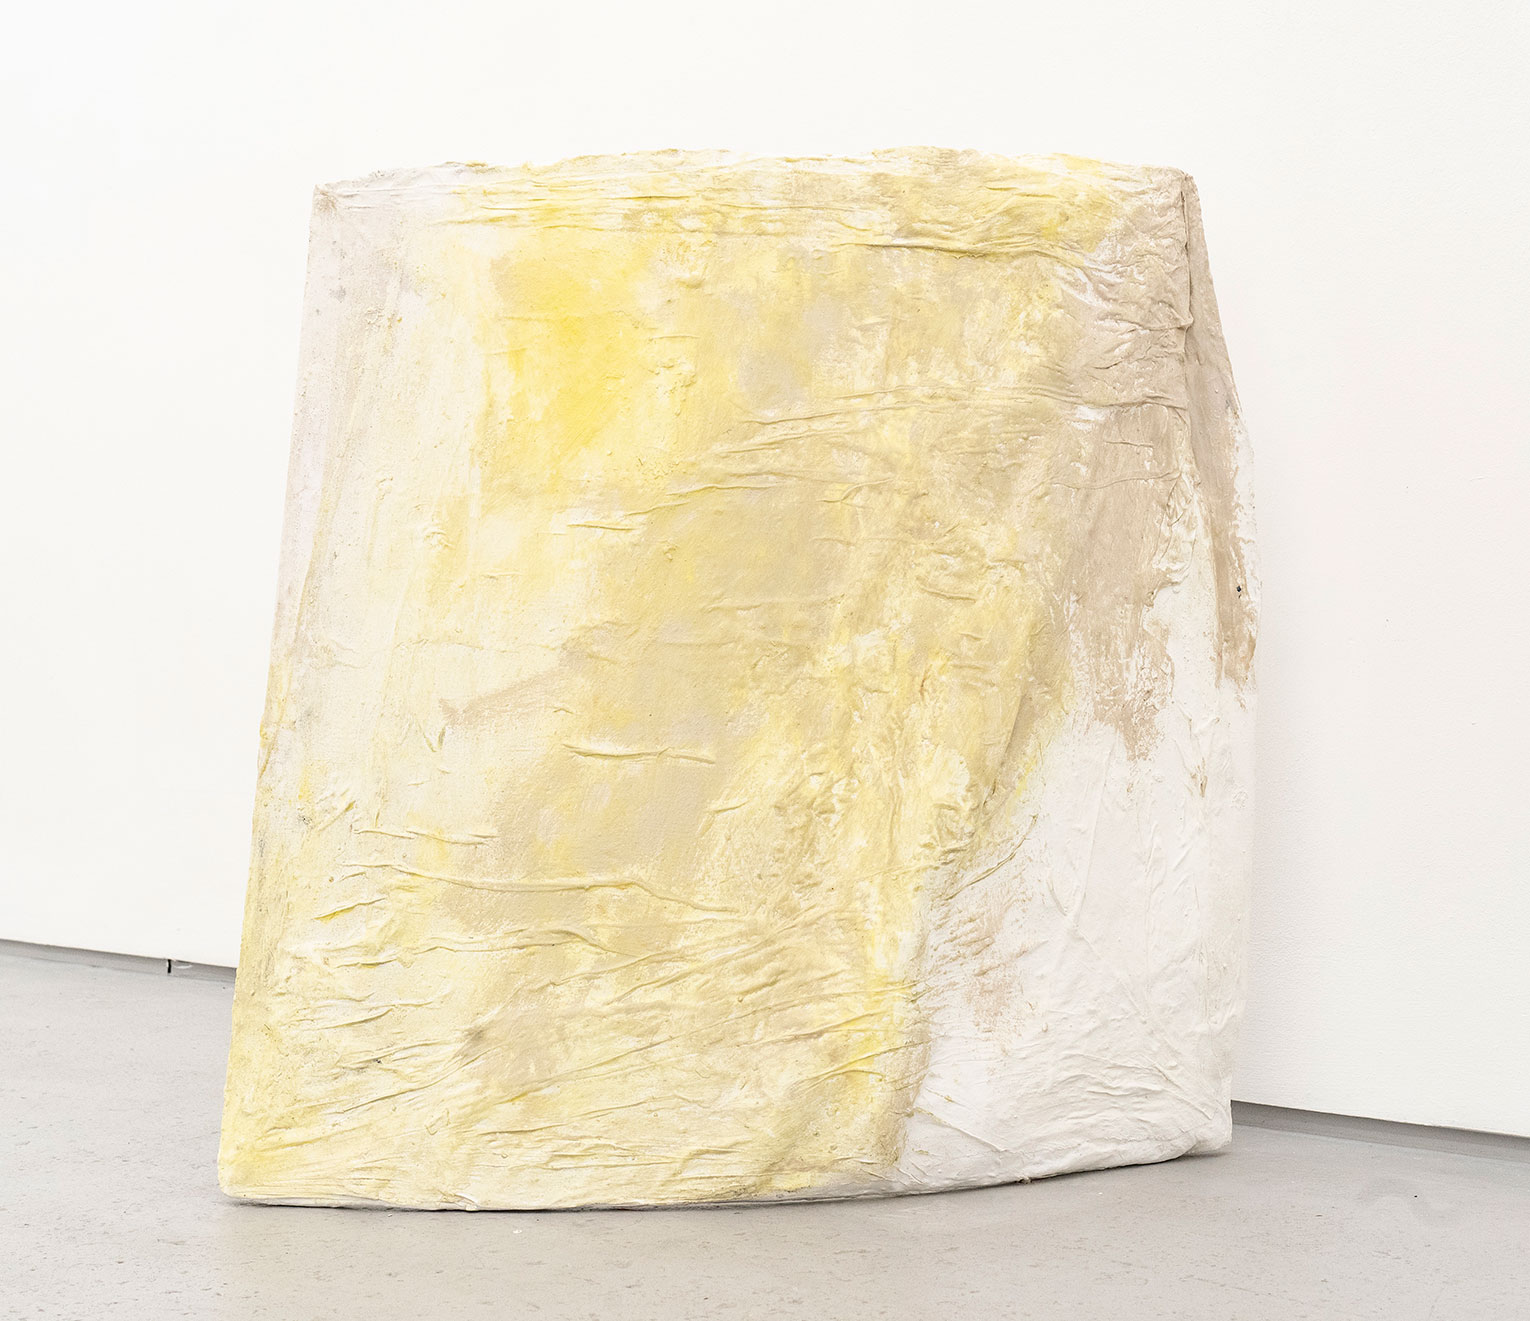 <b>Title: </b>COVER<br /><b>Year: </b>2021<br /><b>Medium: </b>Standing sculpture made of board, gauze, white paint<br /><b>Size: </b>76 x 73 x 22 cm